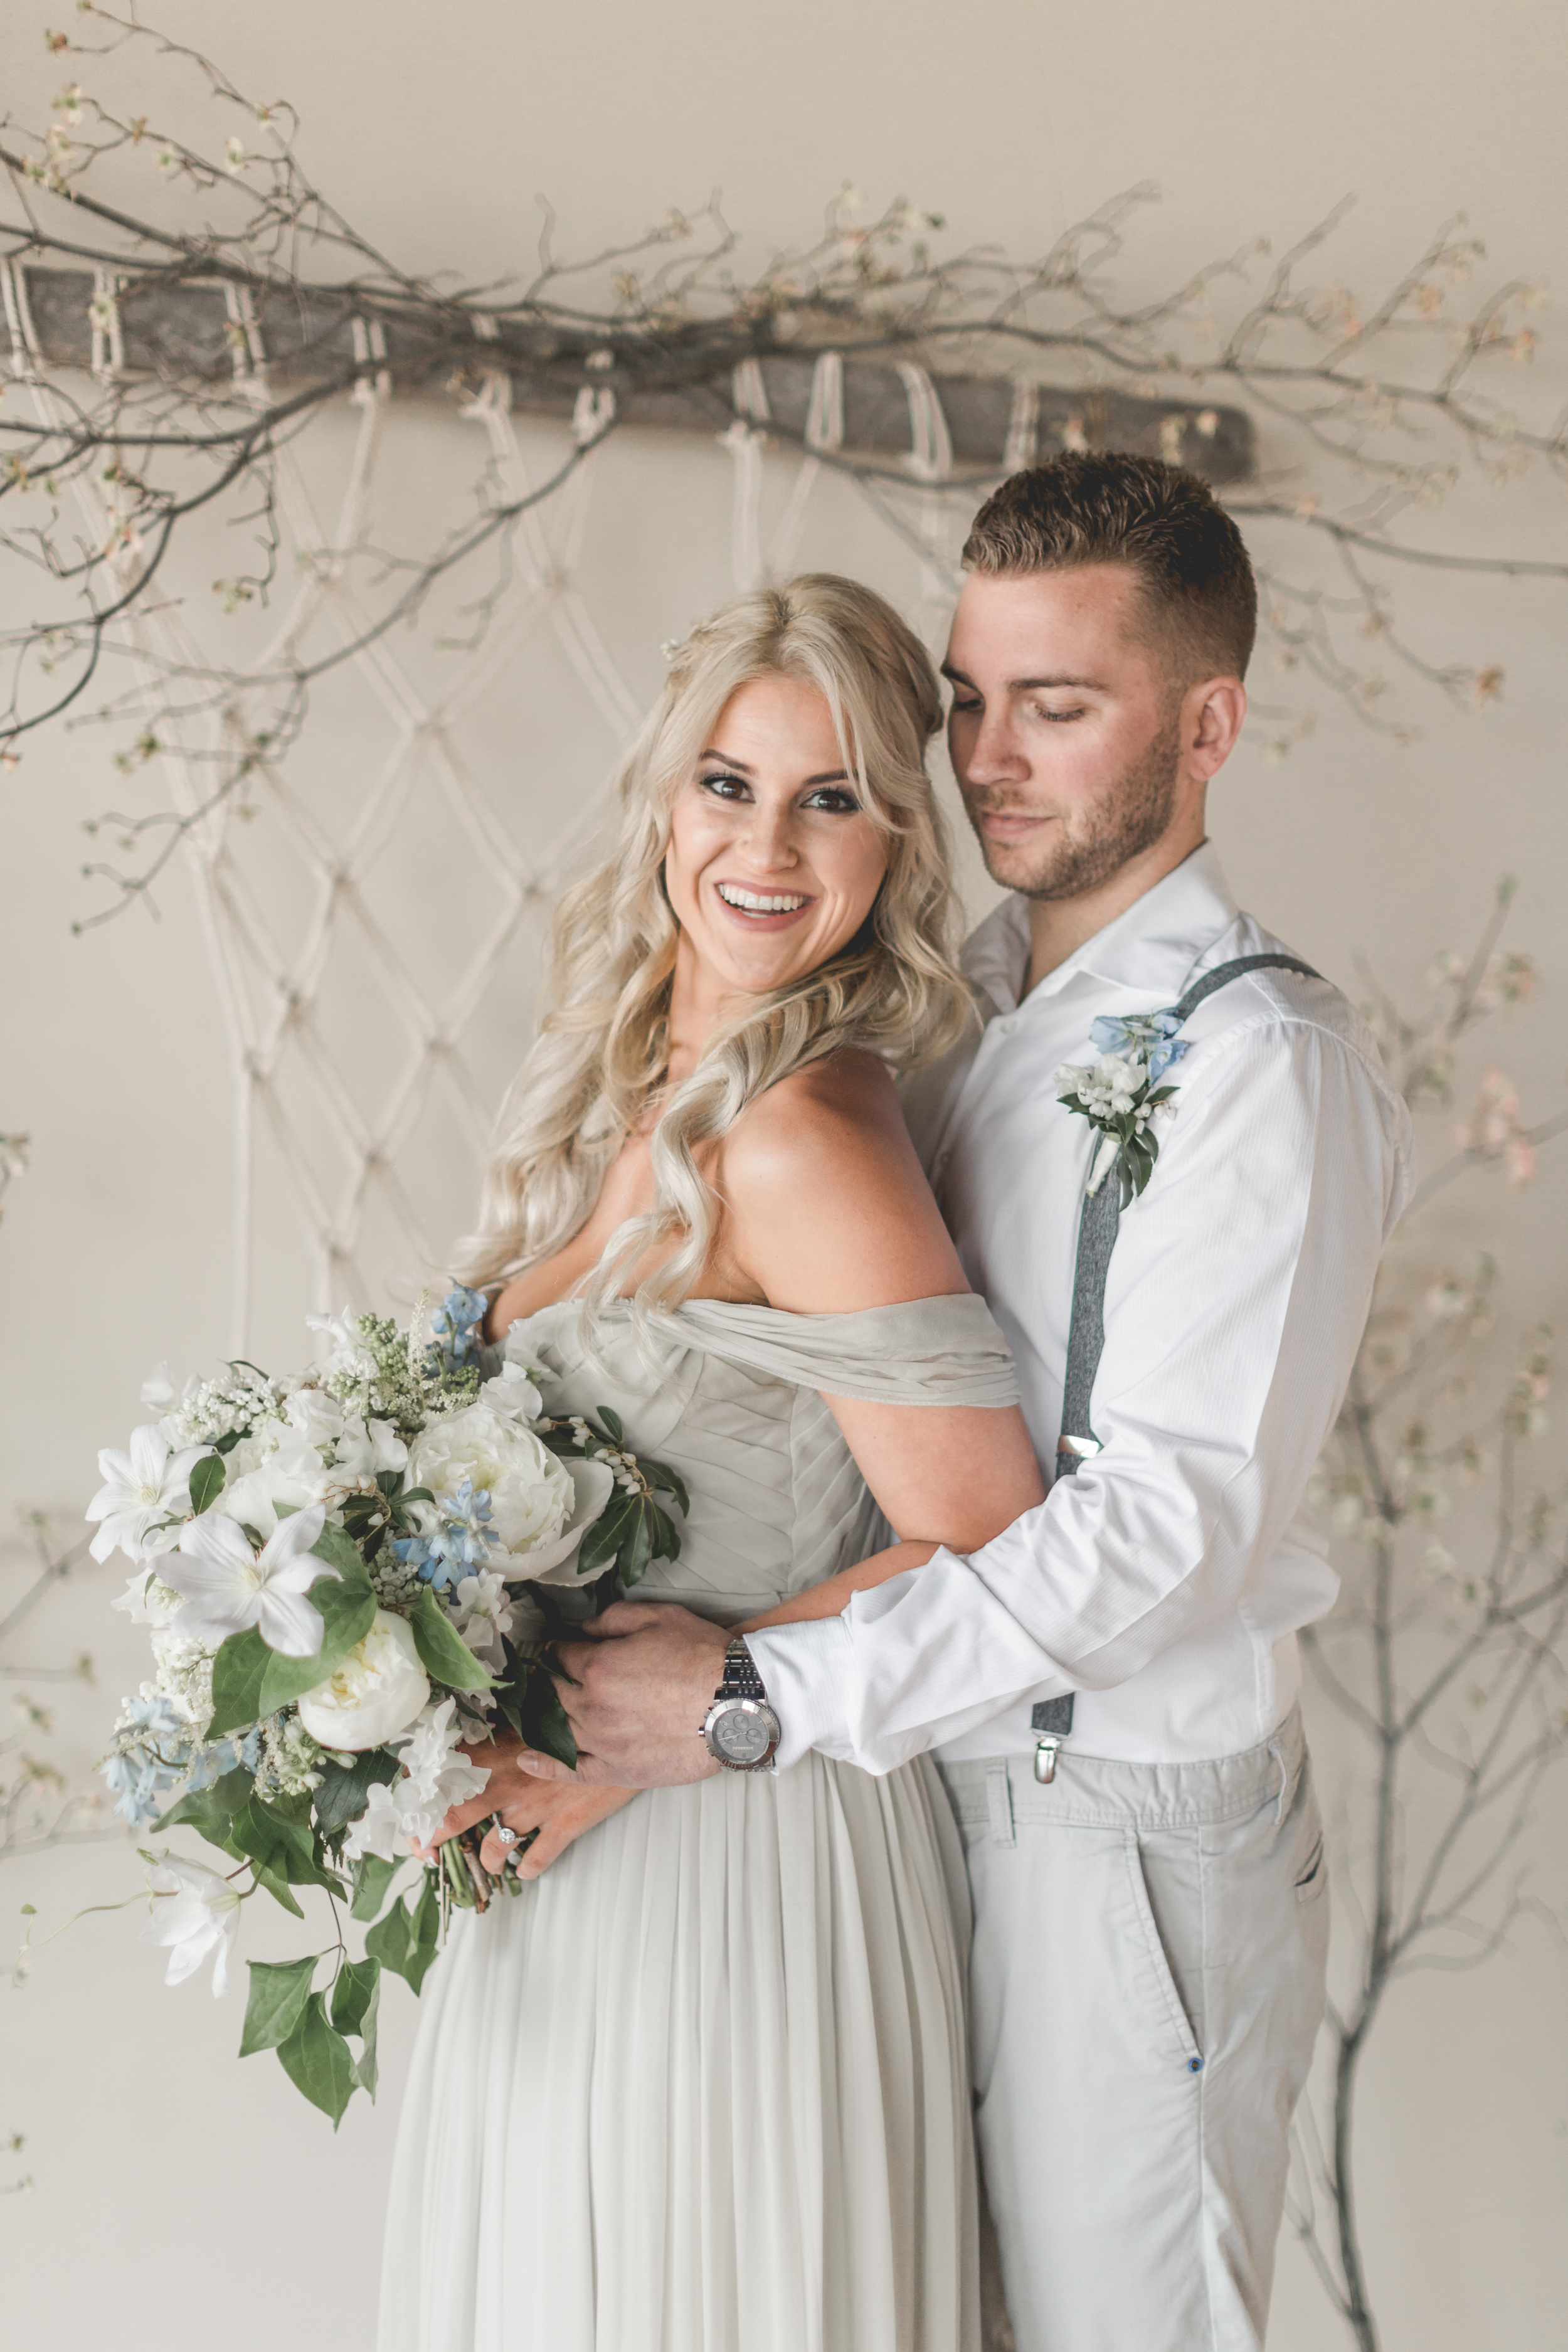 Whaling_Museum_Styled_Shoot_ceremony_4-19-16-9.jpg